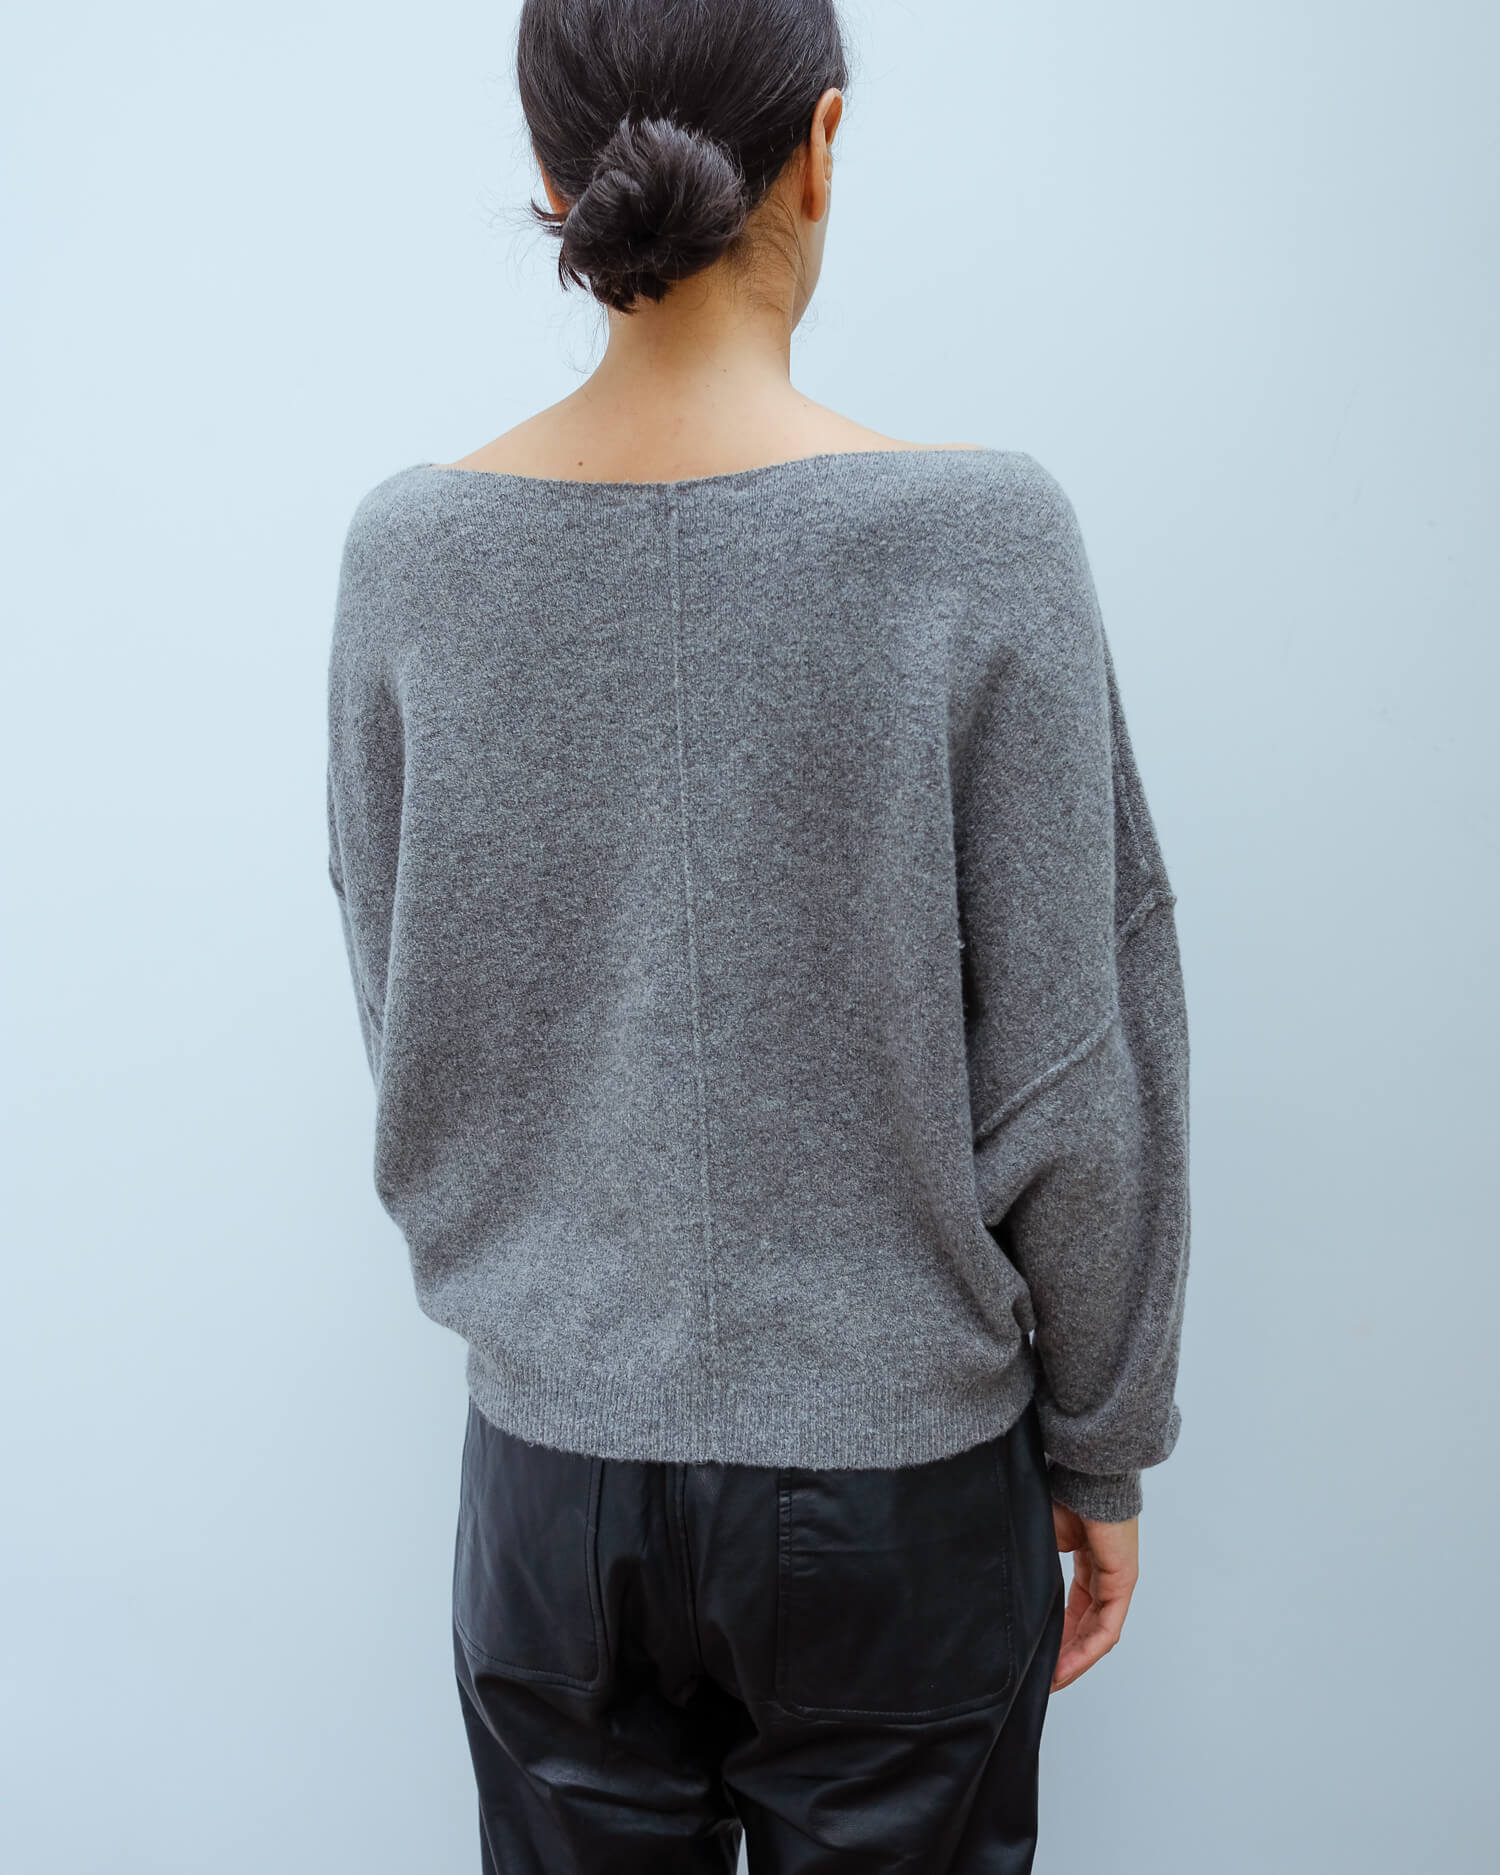 AV DAM225 LS top in grey chine